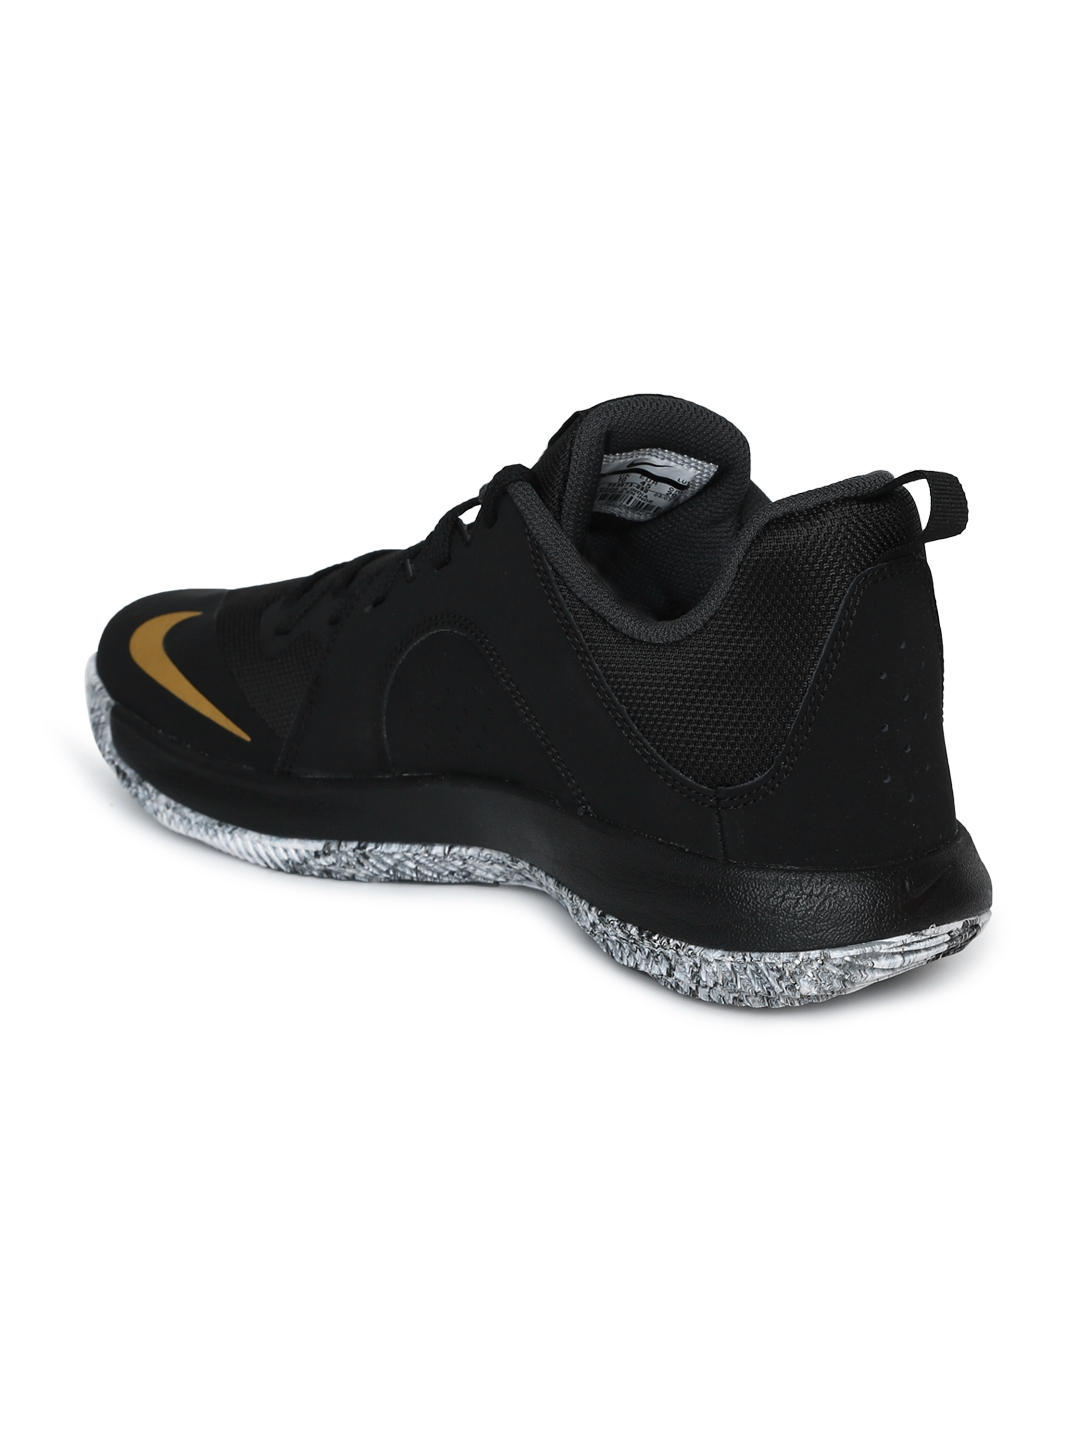 40891b46487 Buy Nike Men Black FLY BY LOW Basketball Shoes - Sports Shoes for ...